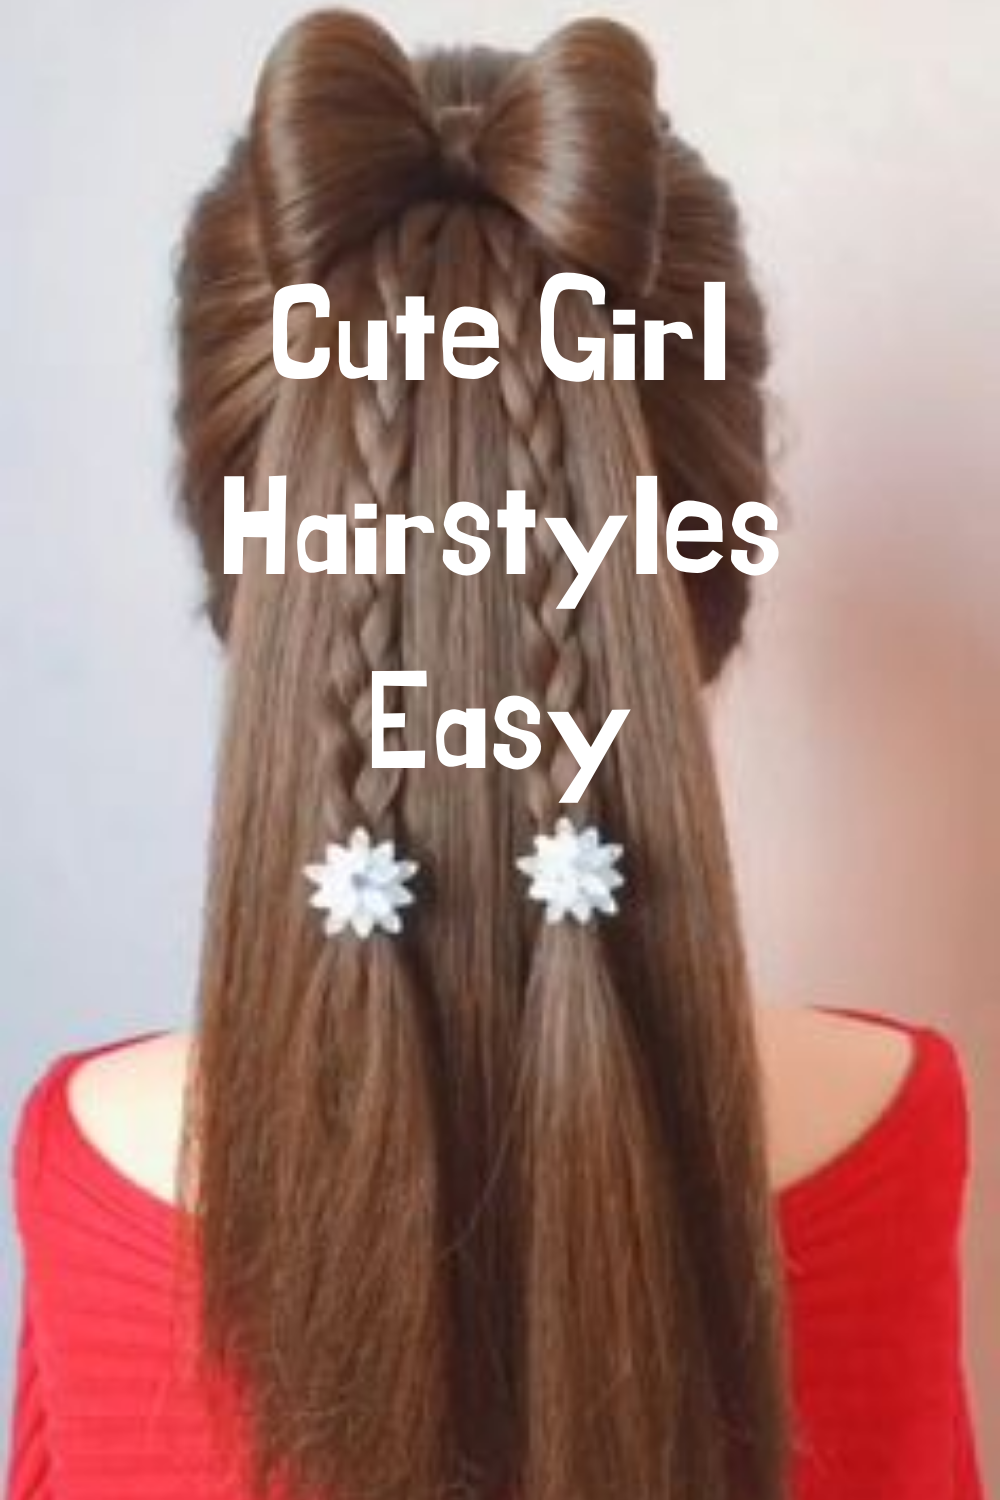 Cute Girl Hairstyles Easy Hair Styles Girls Hairstyles Easy Easy Hairstyles